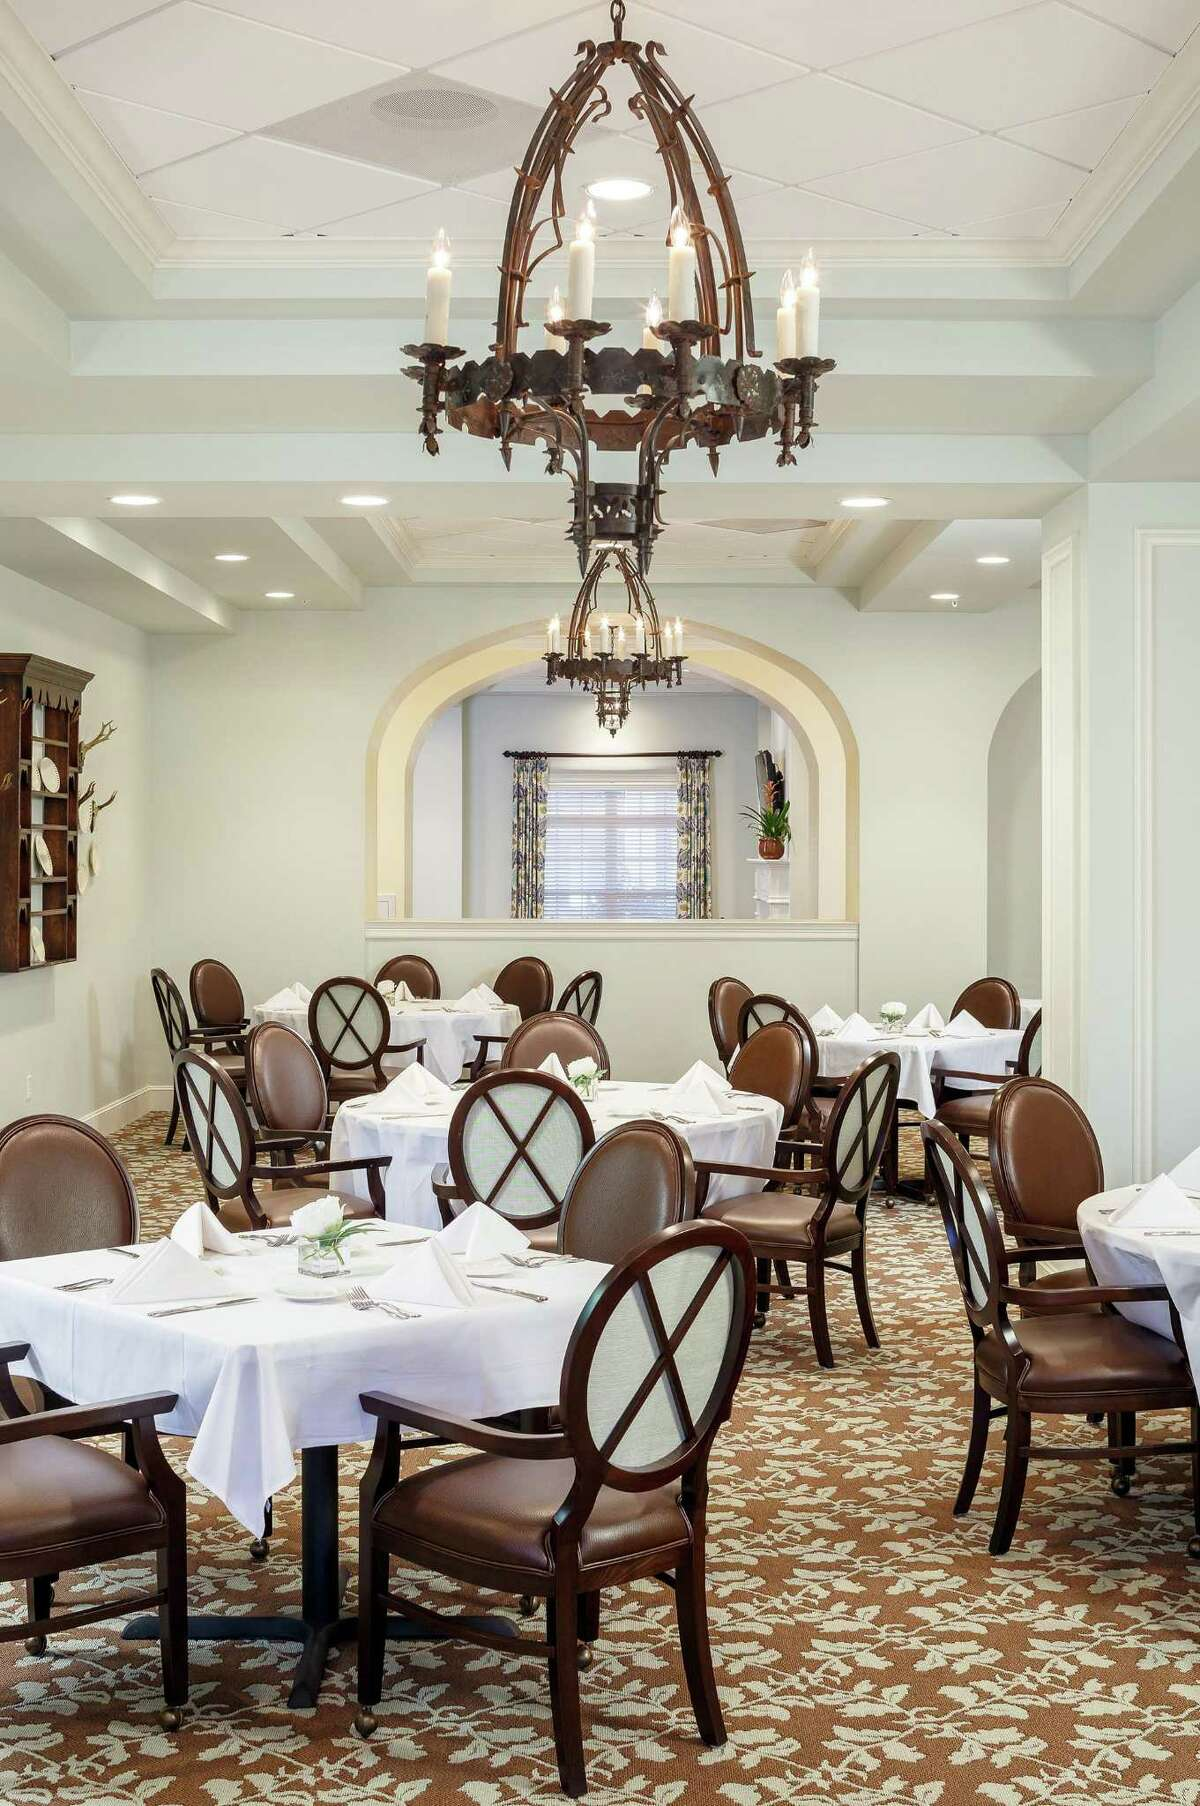 The Tradition features large communal dining rooms.